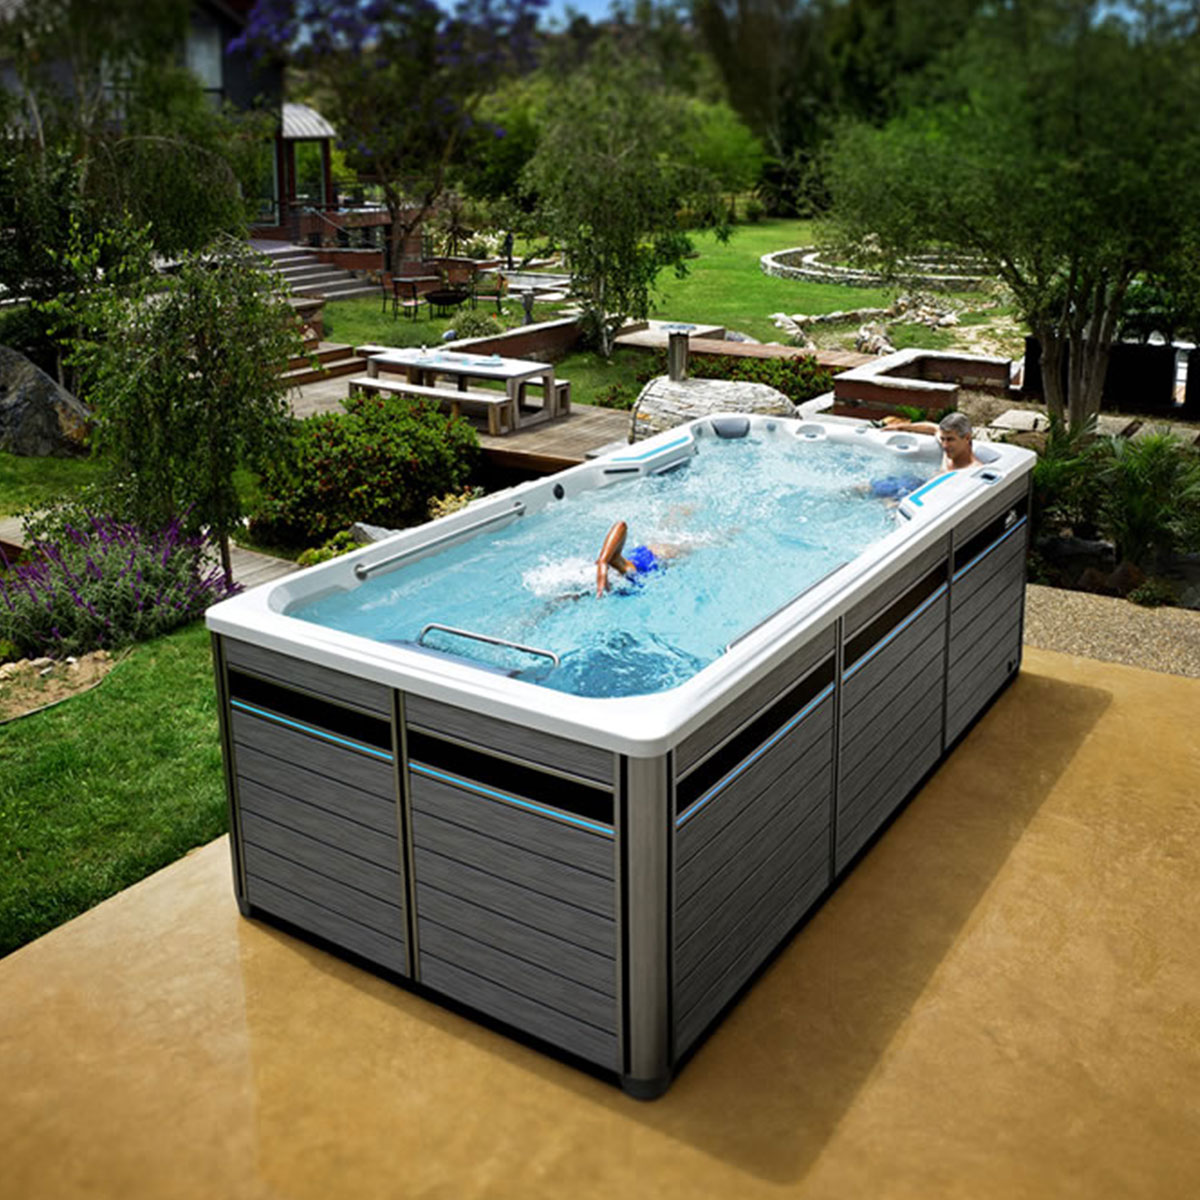 Swim Spas Dealer Supports Physical Therapy Month, Used Hot Tubs Boulder3